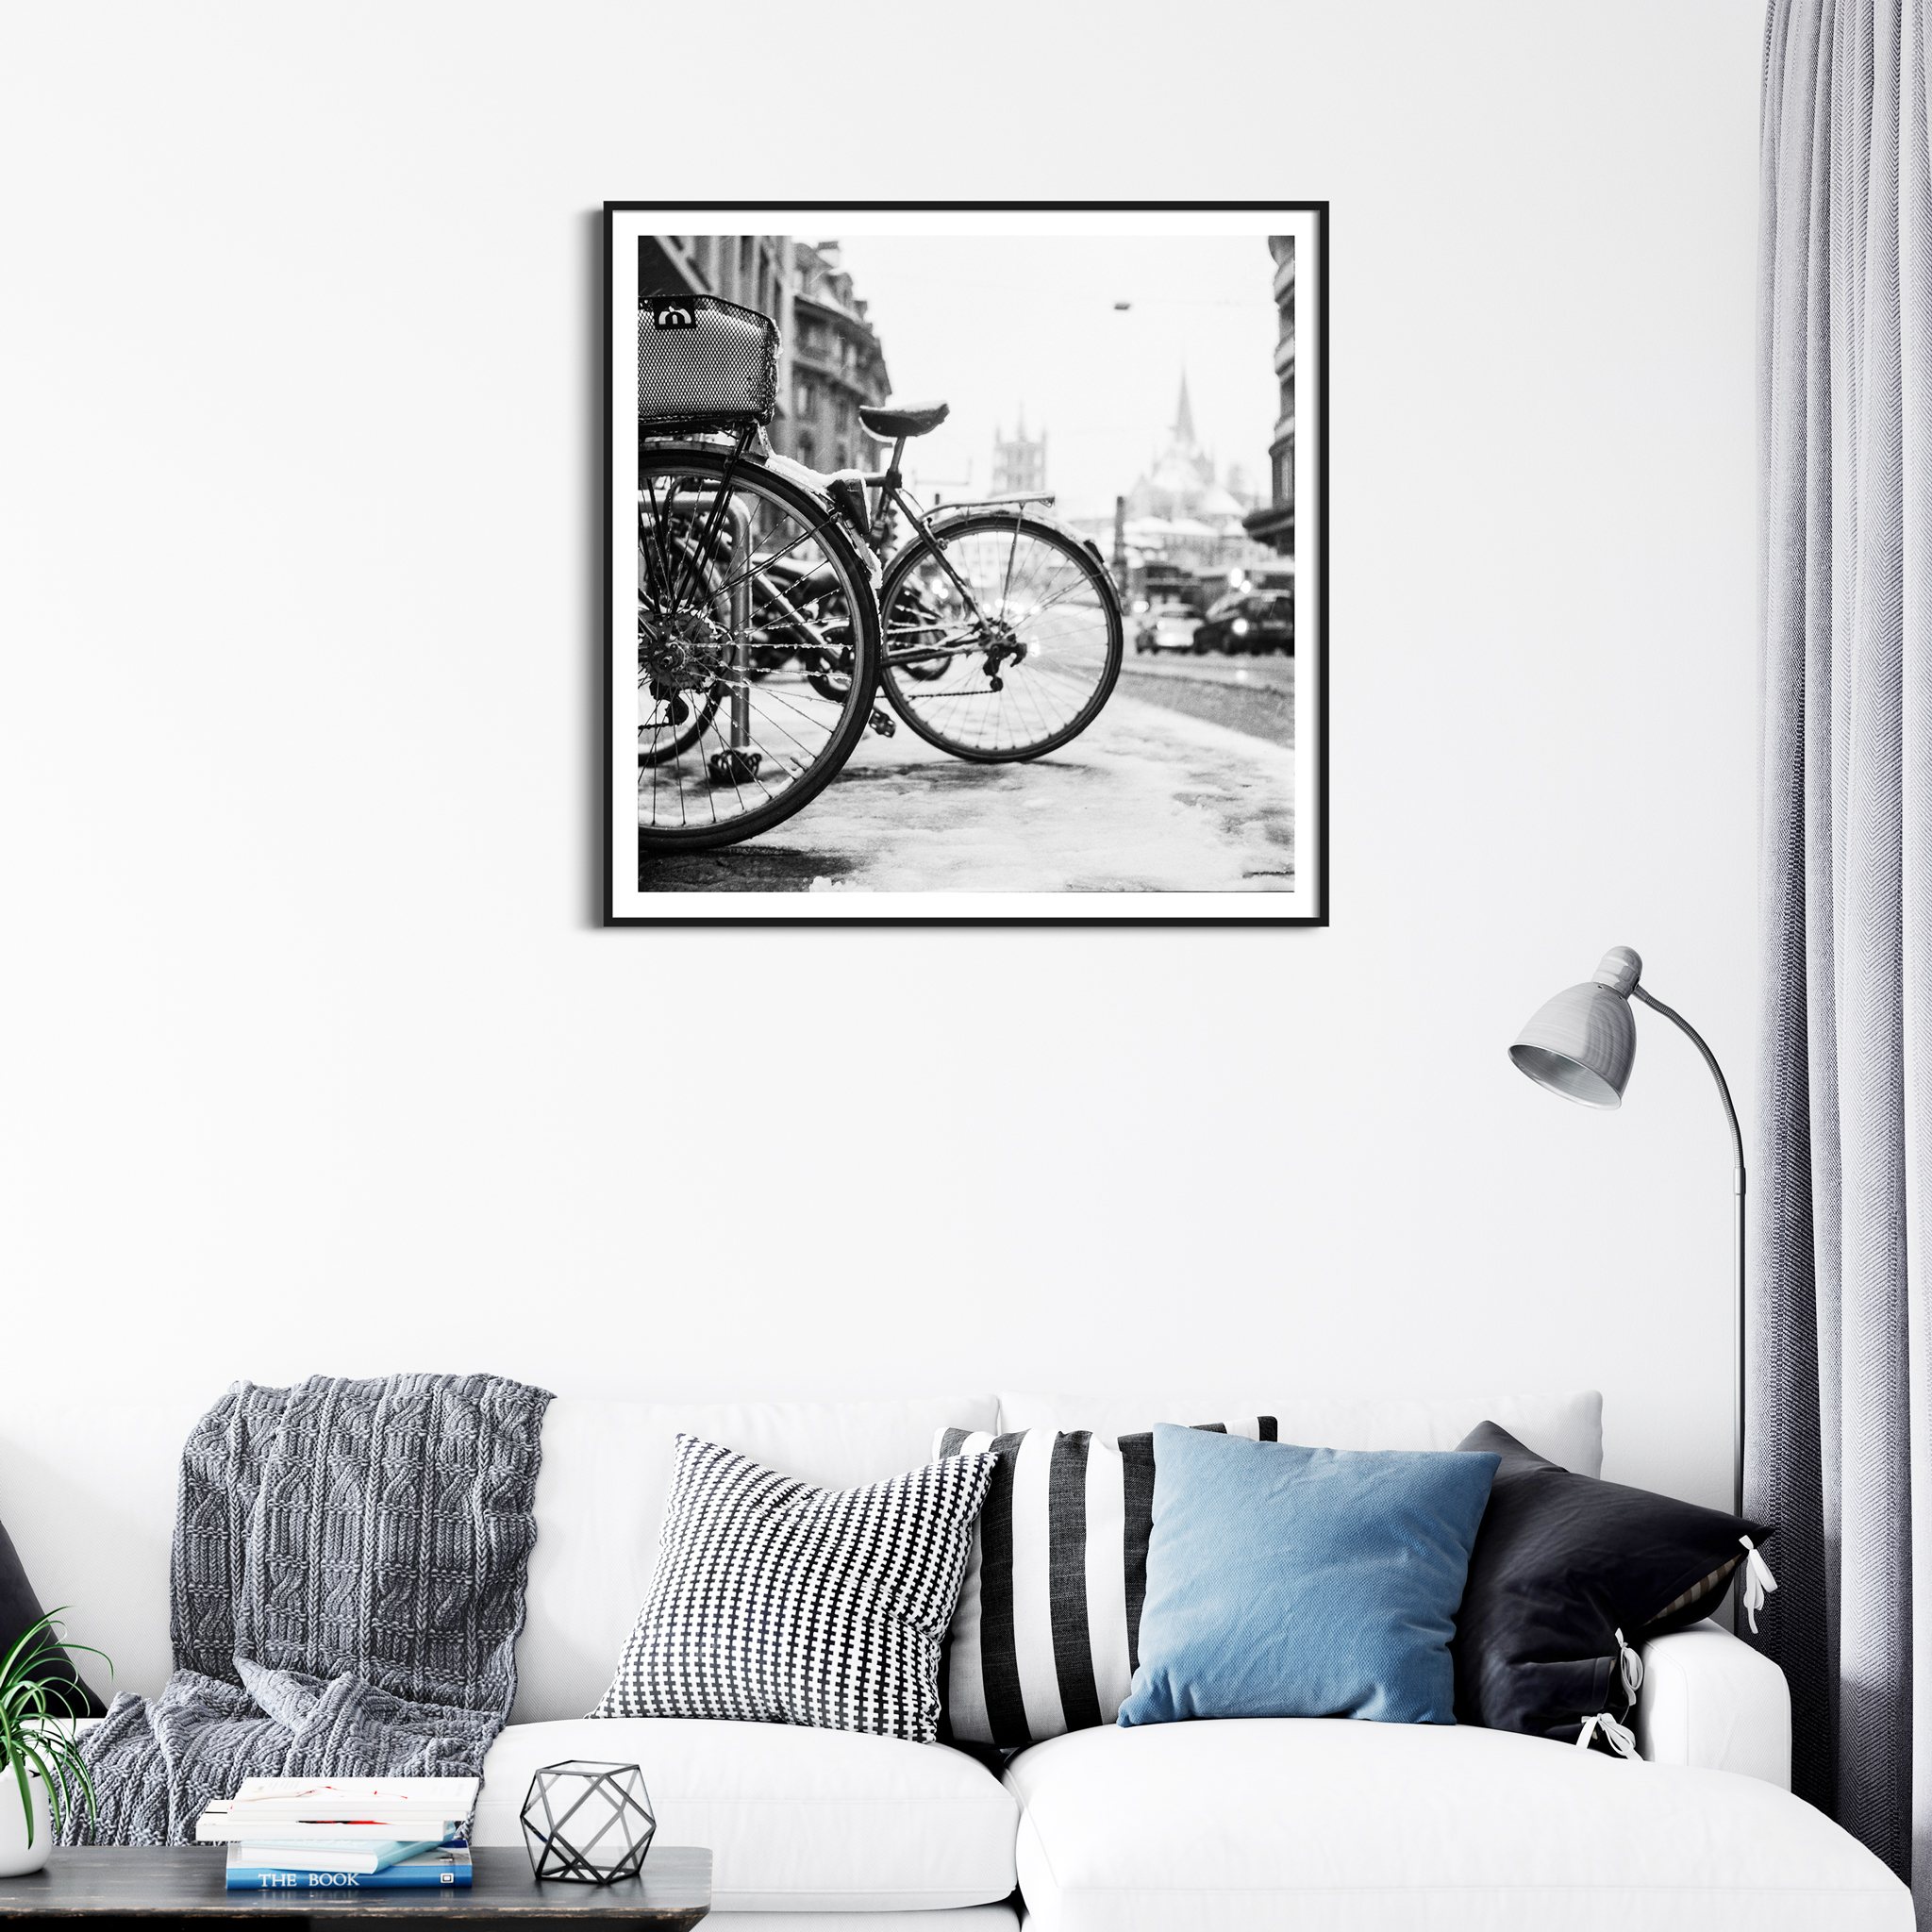 Bicycles in Lausanne in Snow - black and white print in black frame with border on the wall